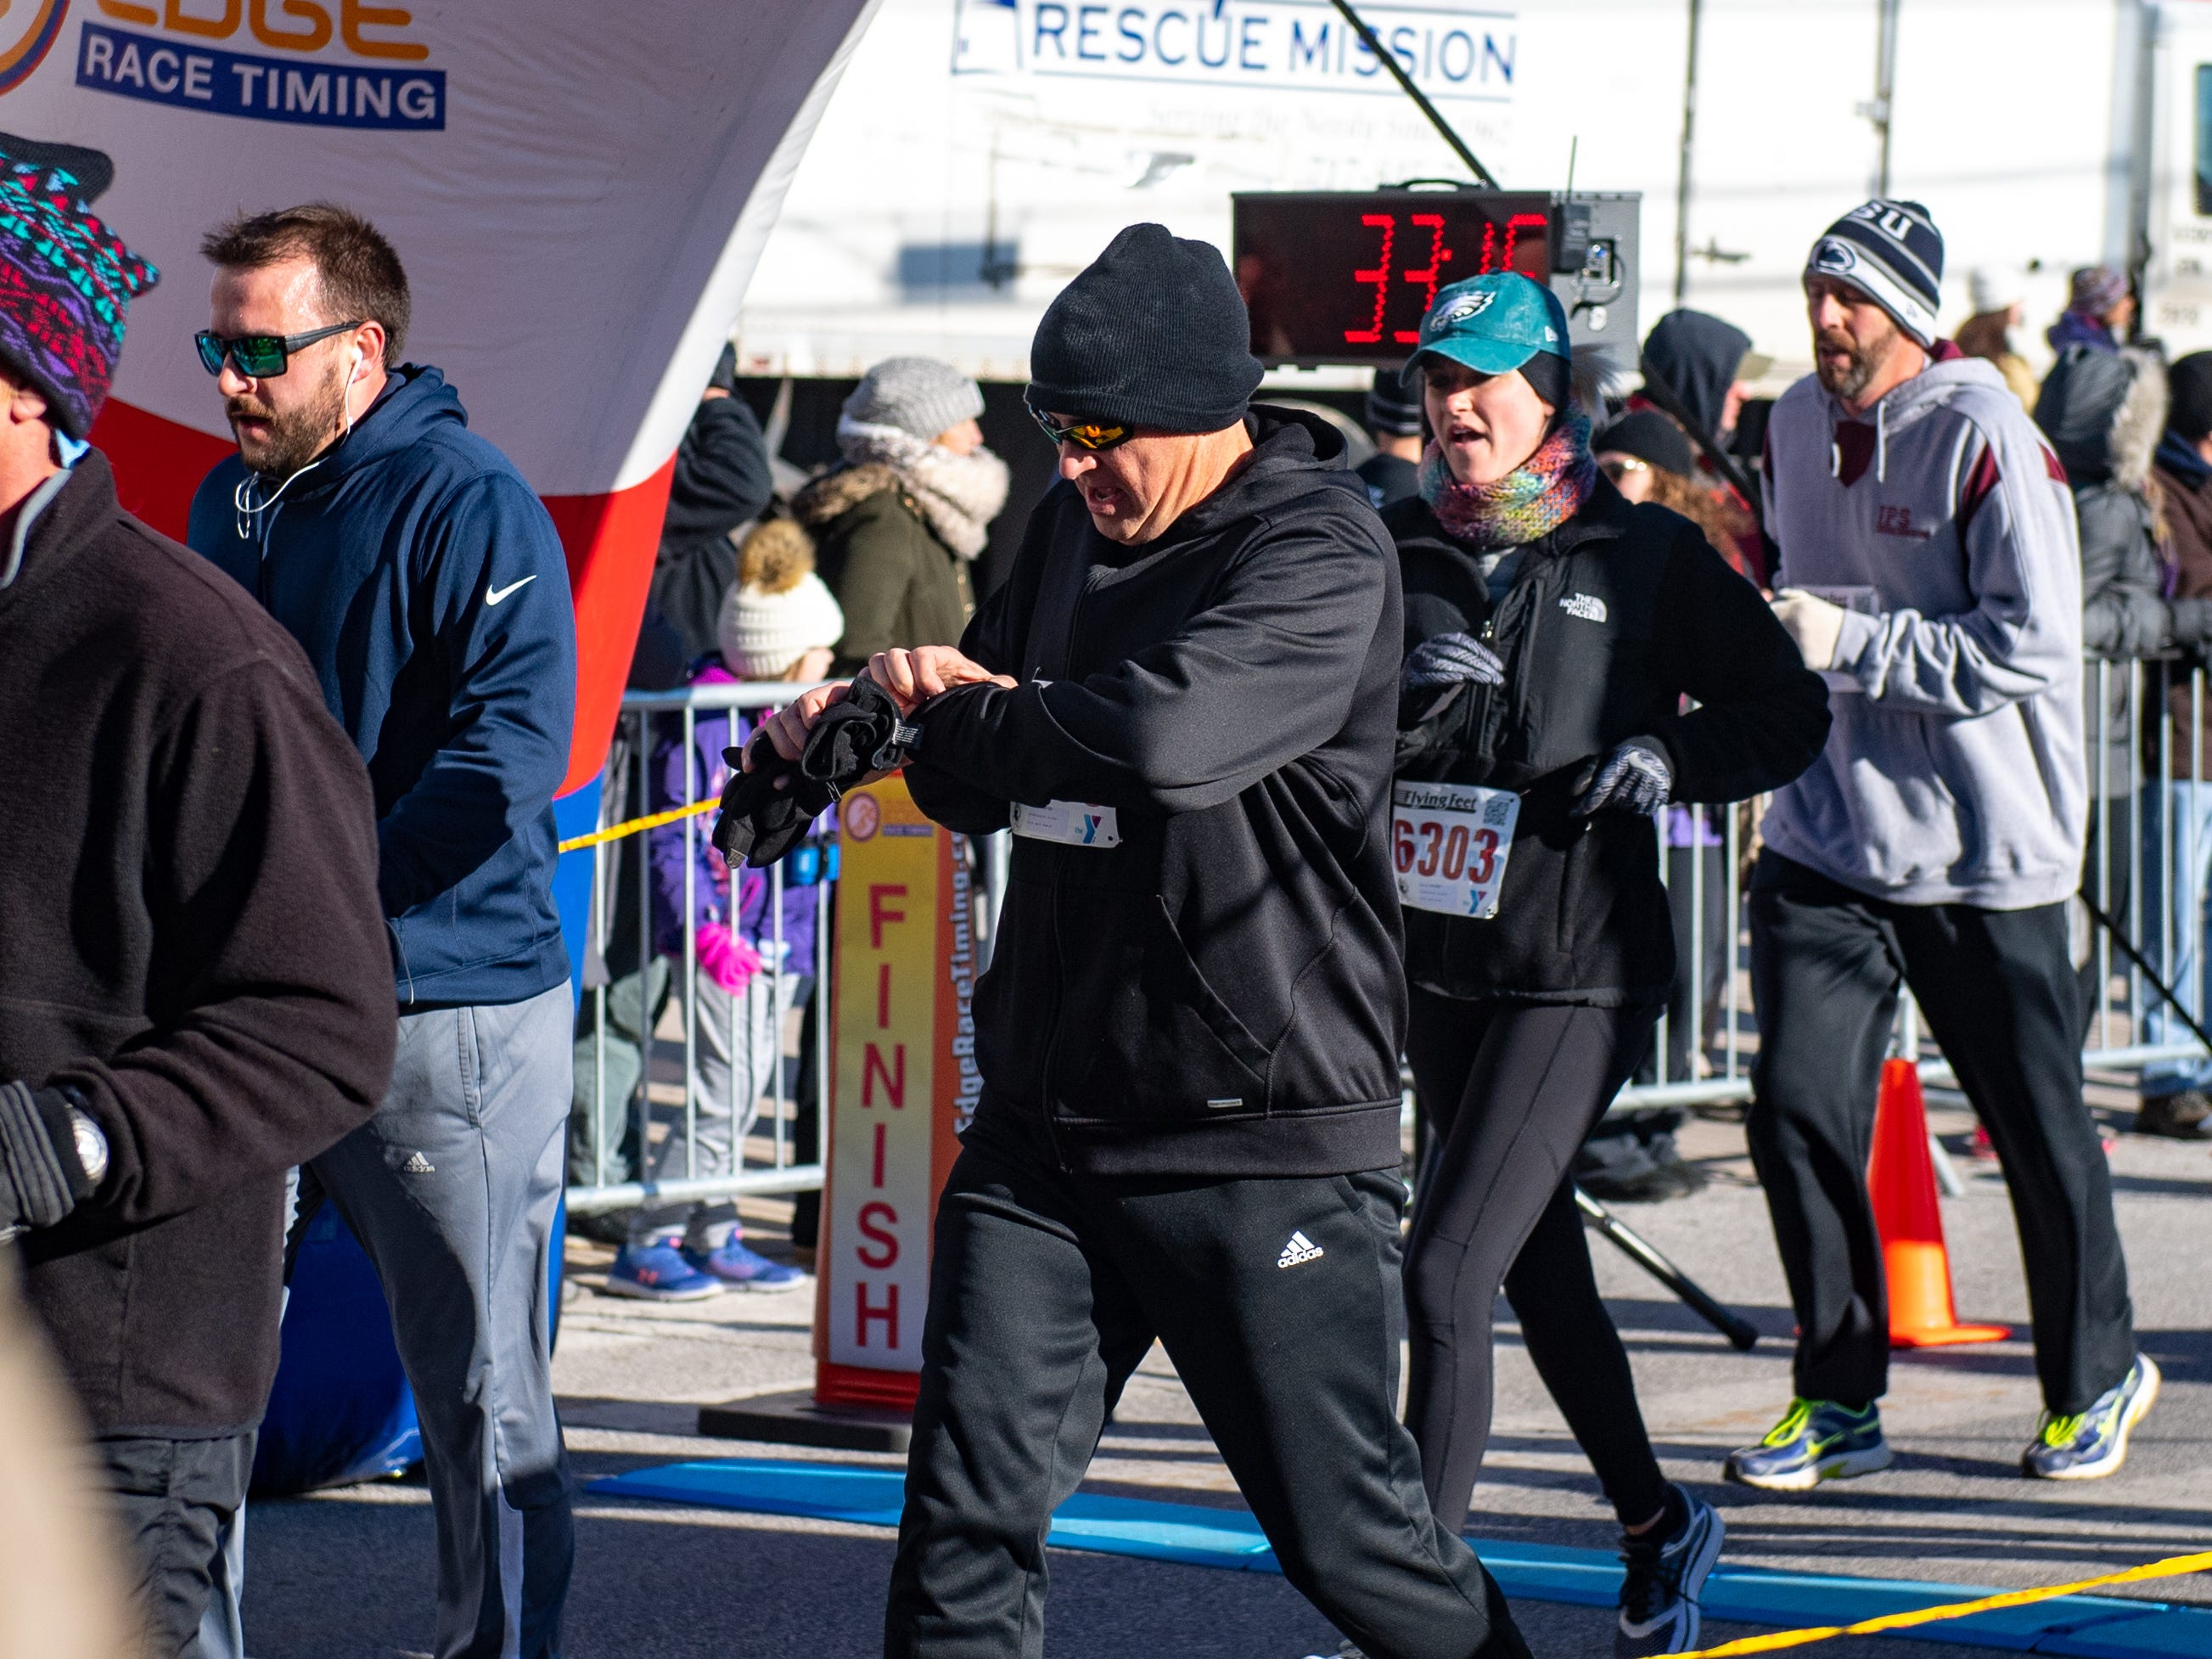 Participants cross the finish line during the 22nd Annual Turkey Trot 5K, on Thanksgiving Day, November 22, 2018.